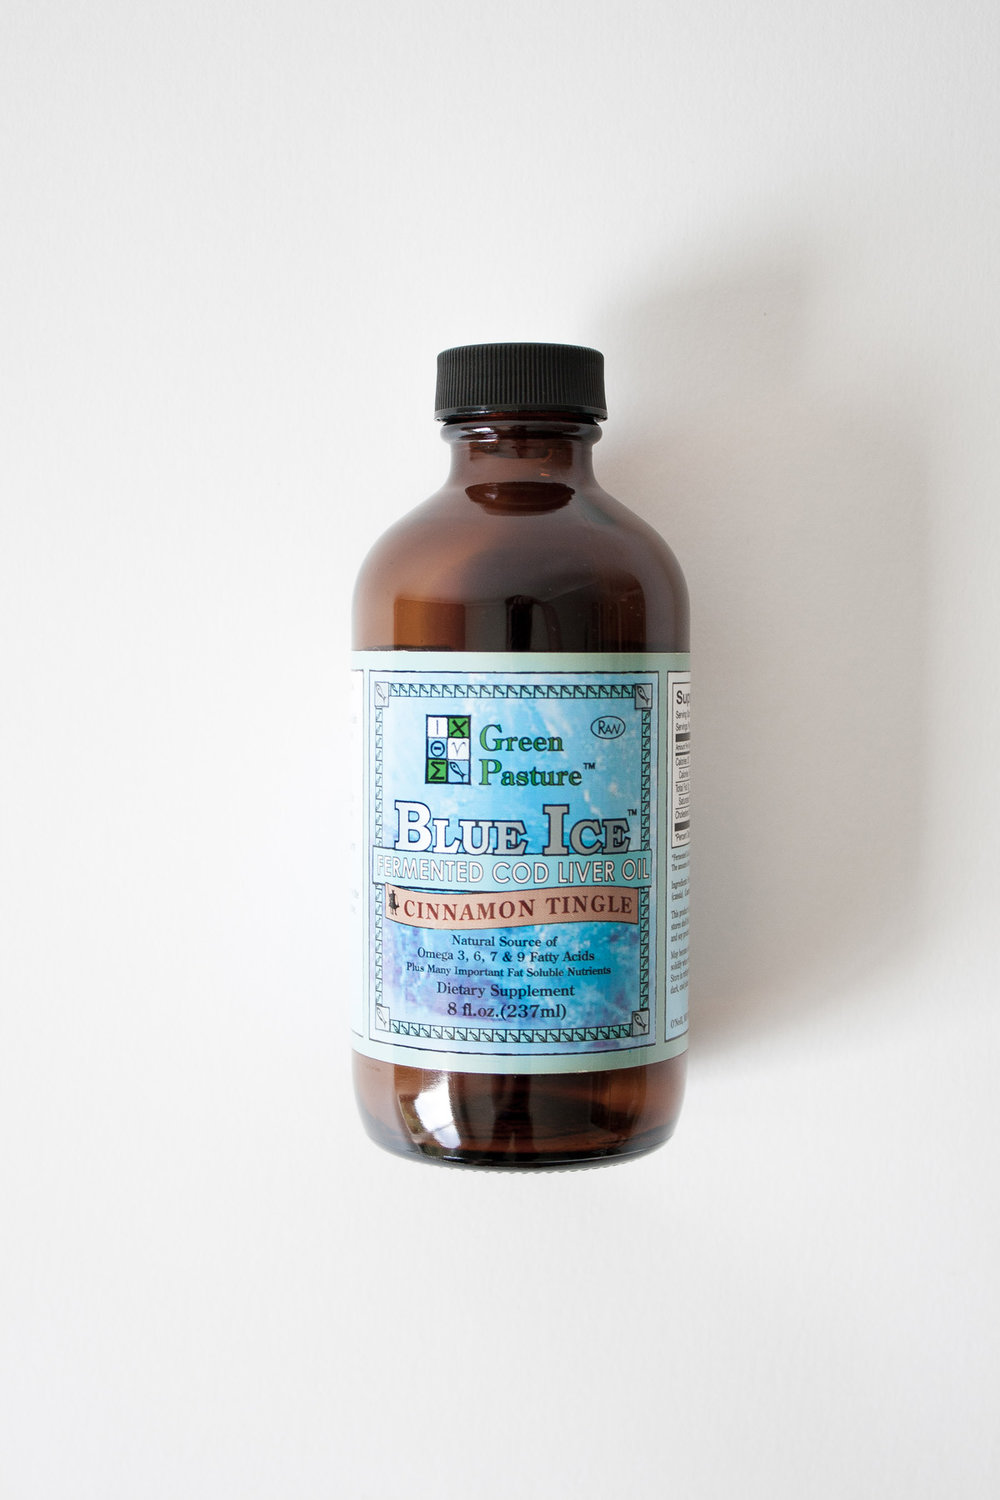 Traditional Superfood: Fermented Cod Liver Oil from Green Pastures